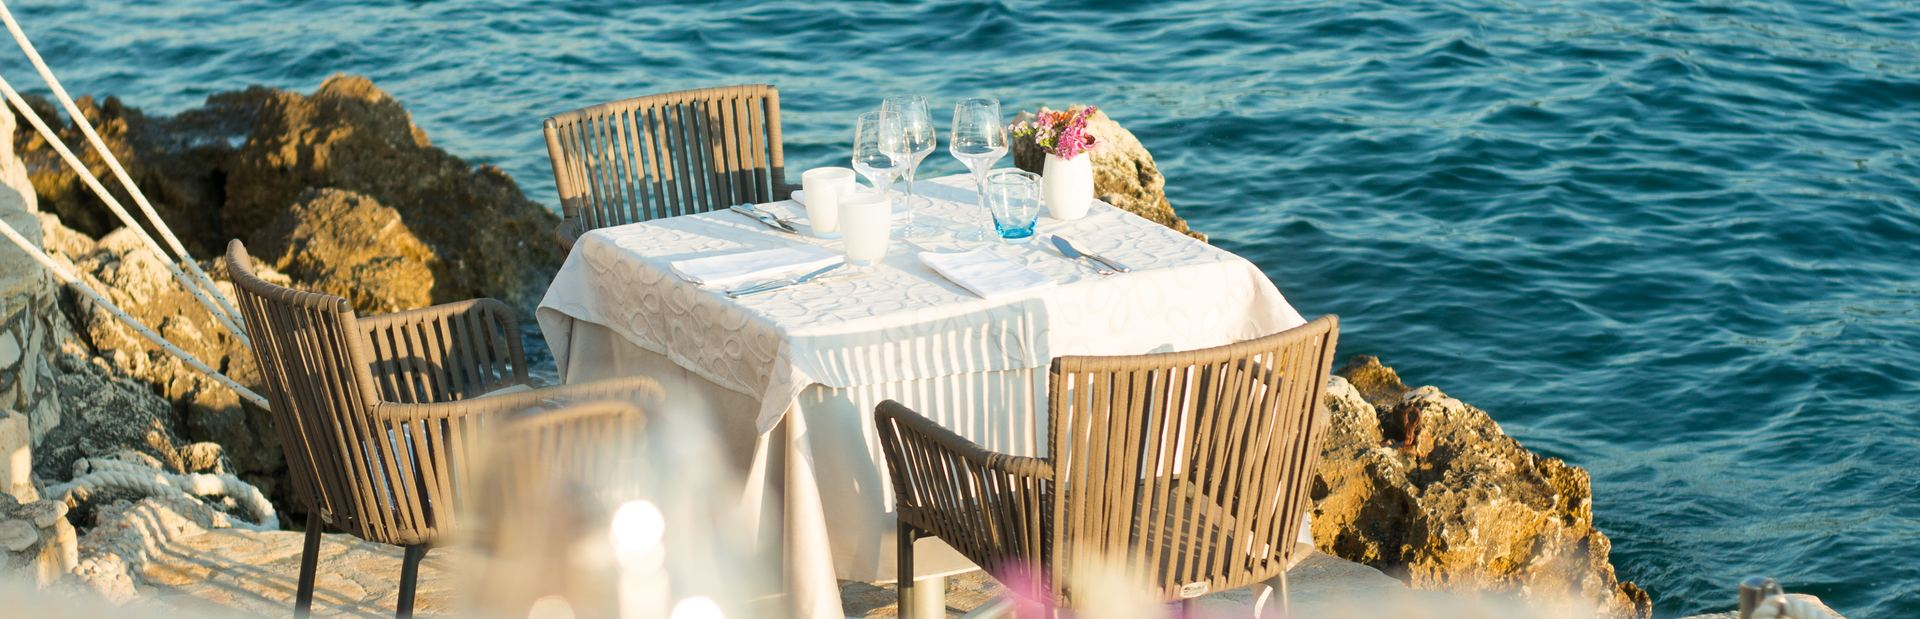 The most sensational restaurants in the Mediterranean which you can visit by yacht